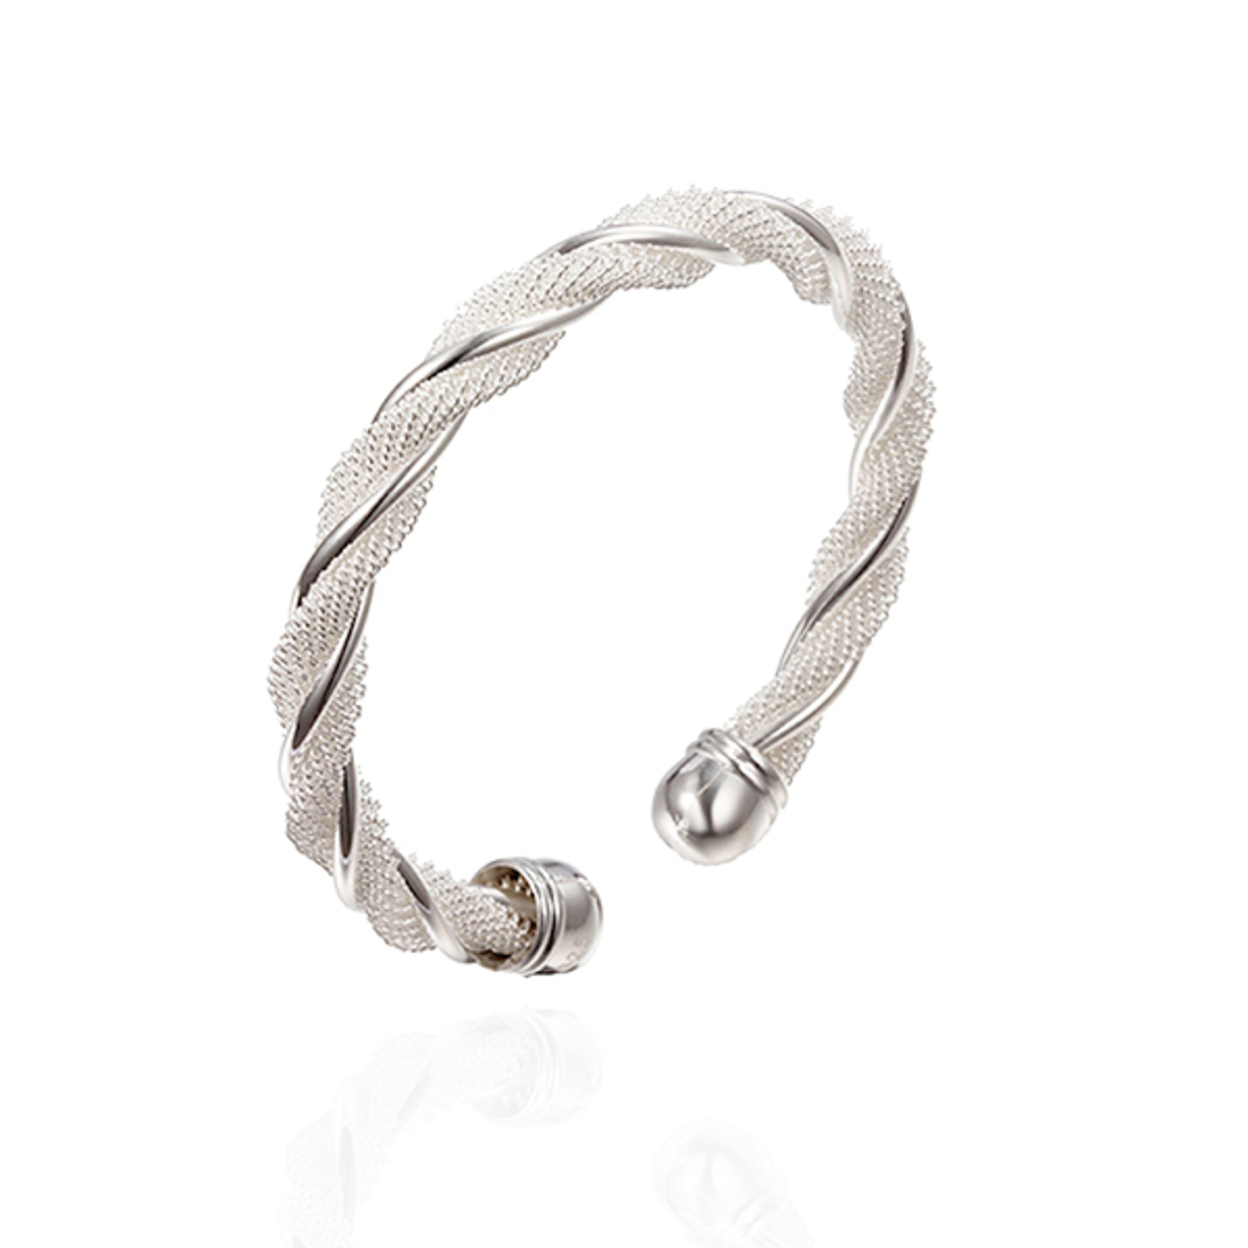 S925 Sterling Silver Simple Twist Bangle